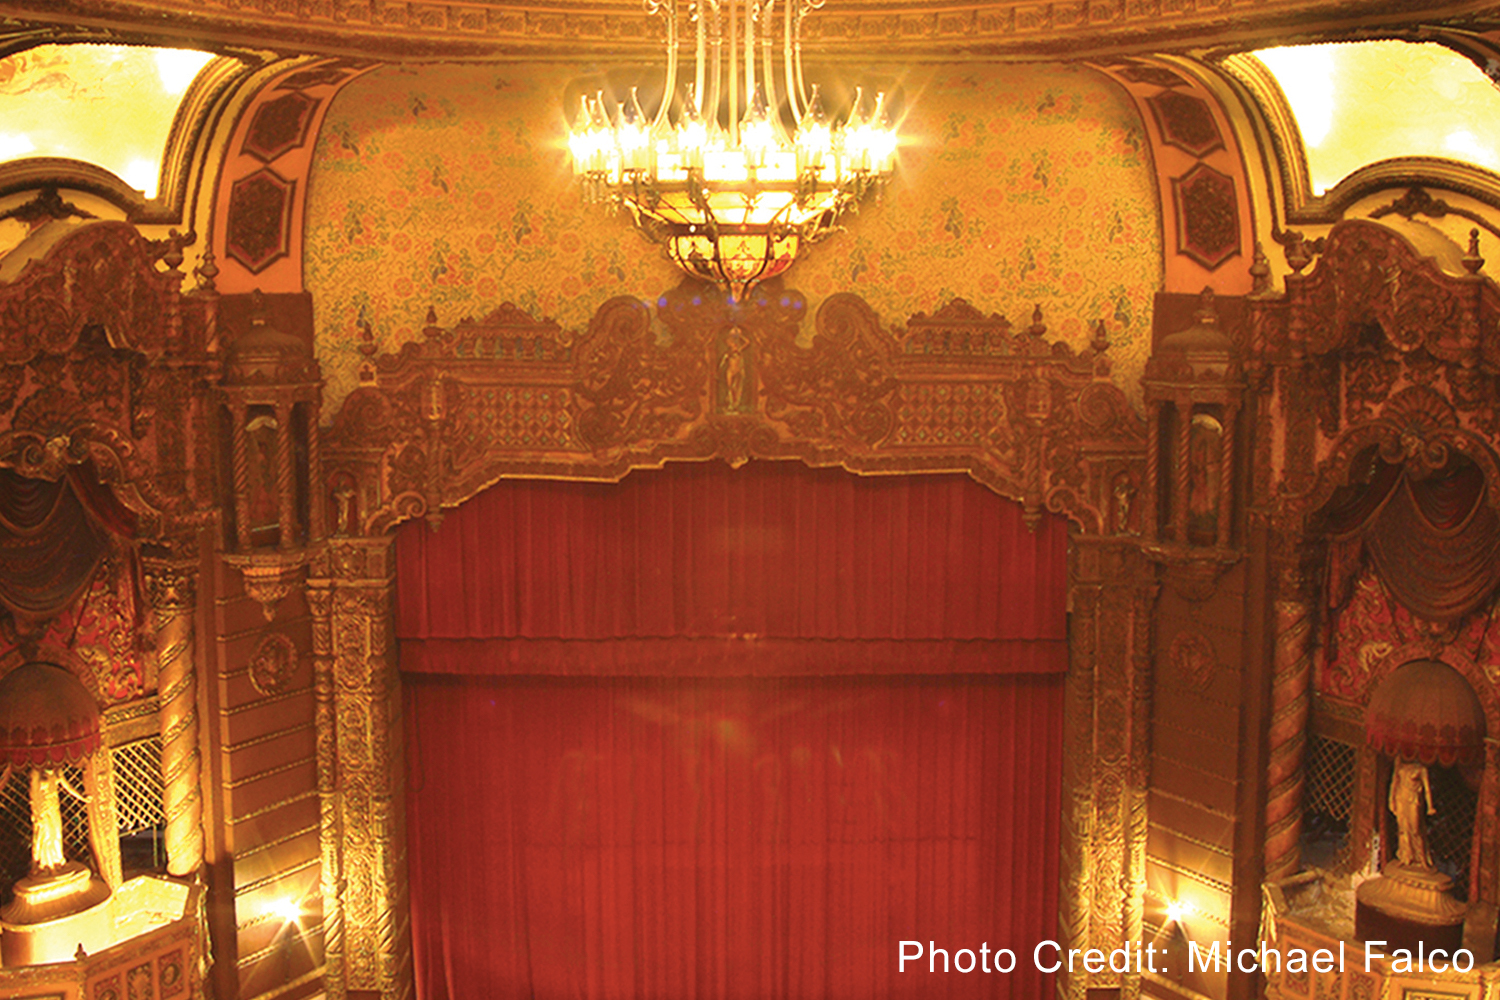 St. George Theatre - St. George Theatre is a historic performing arts venue that was opened in 1929 and has recently been revived. Since its revival, the theatre has booked many high-profile events.35 Hyatt Street, Staten Island, NY 10301Stgeorgetheatre.com